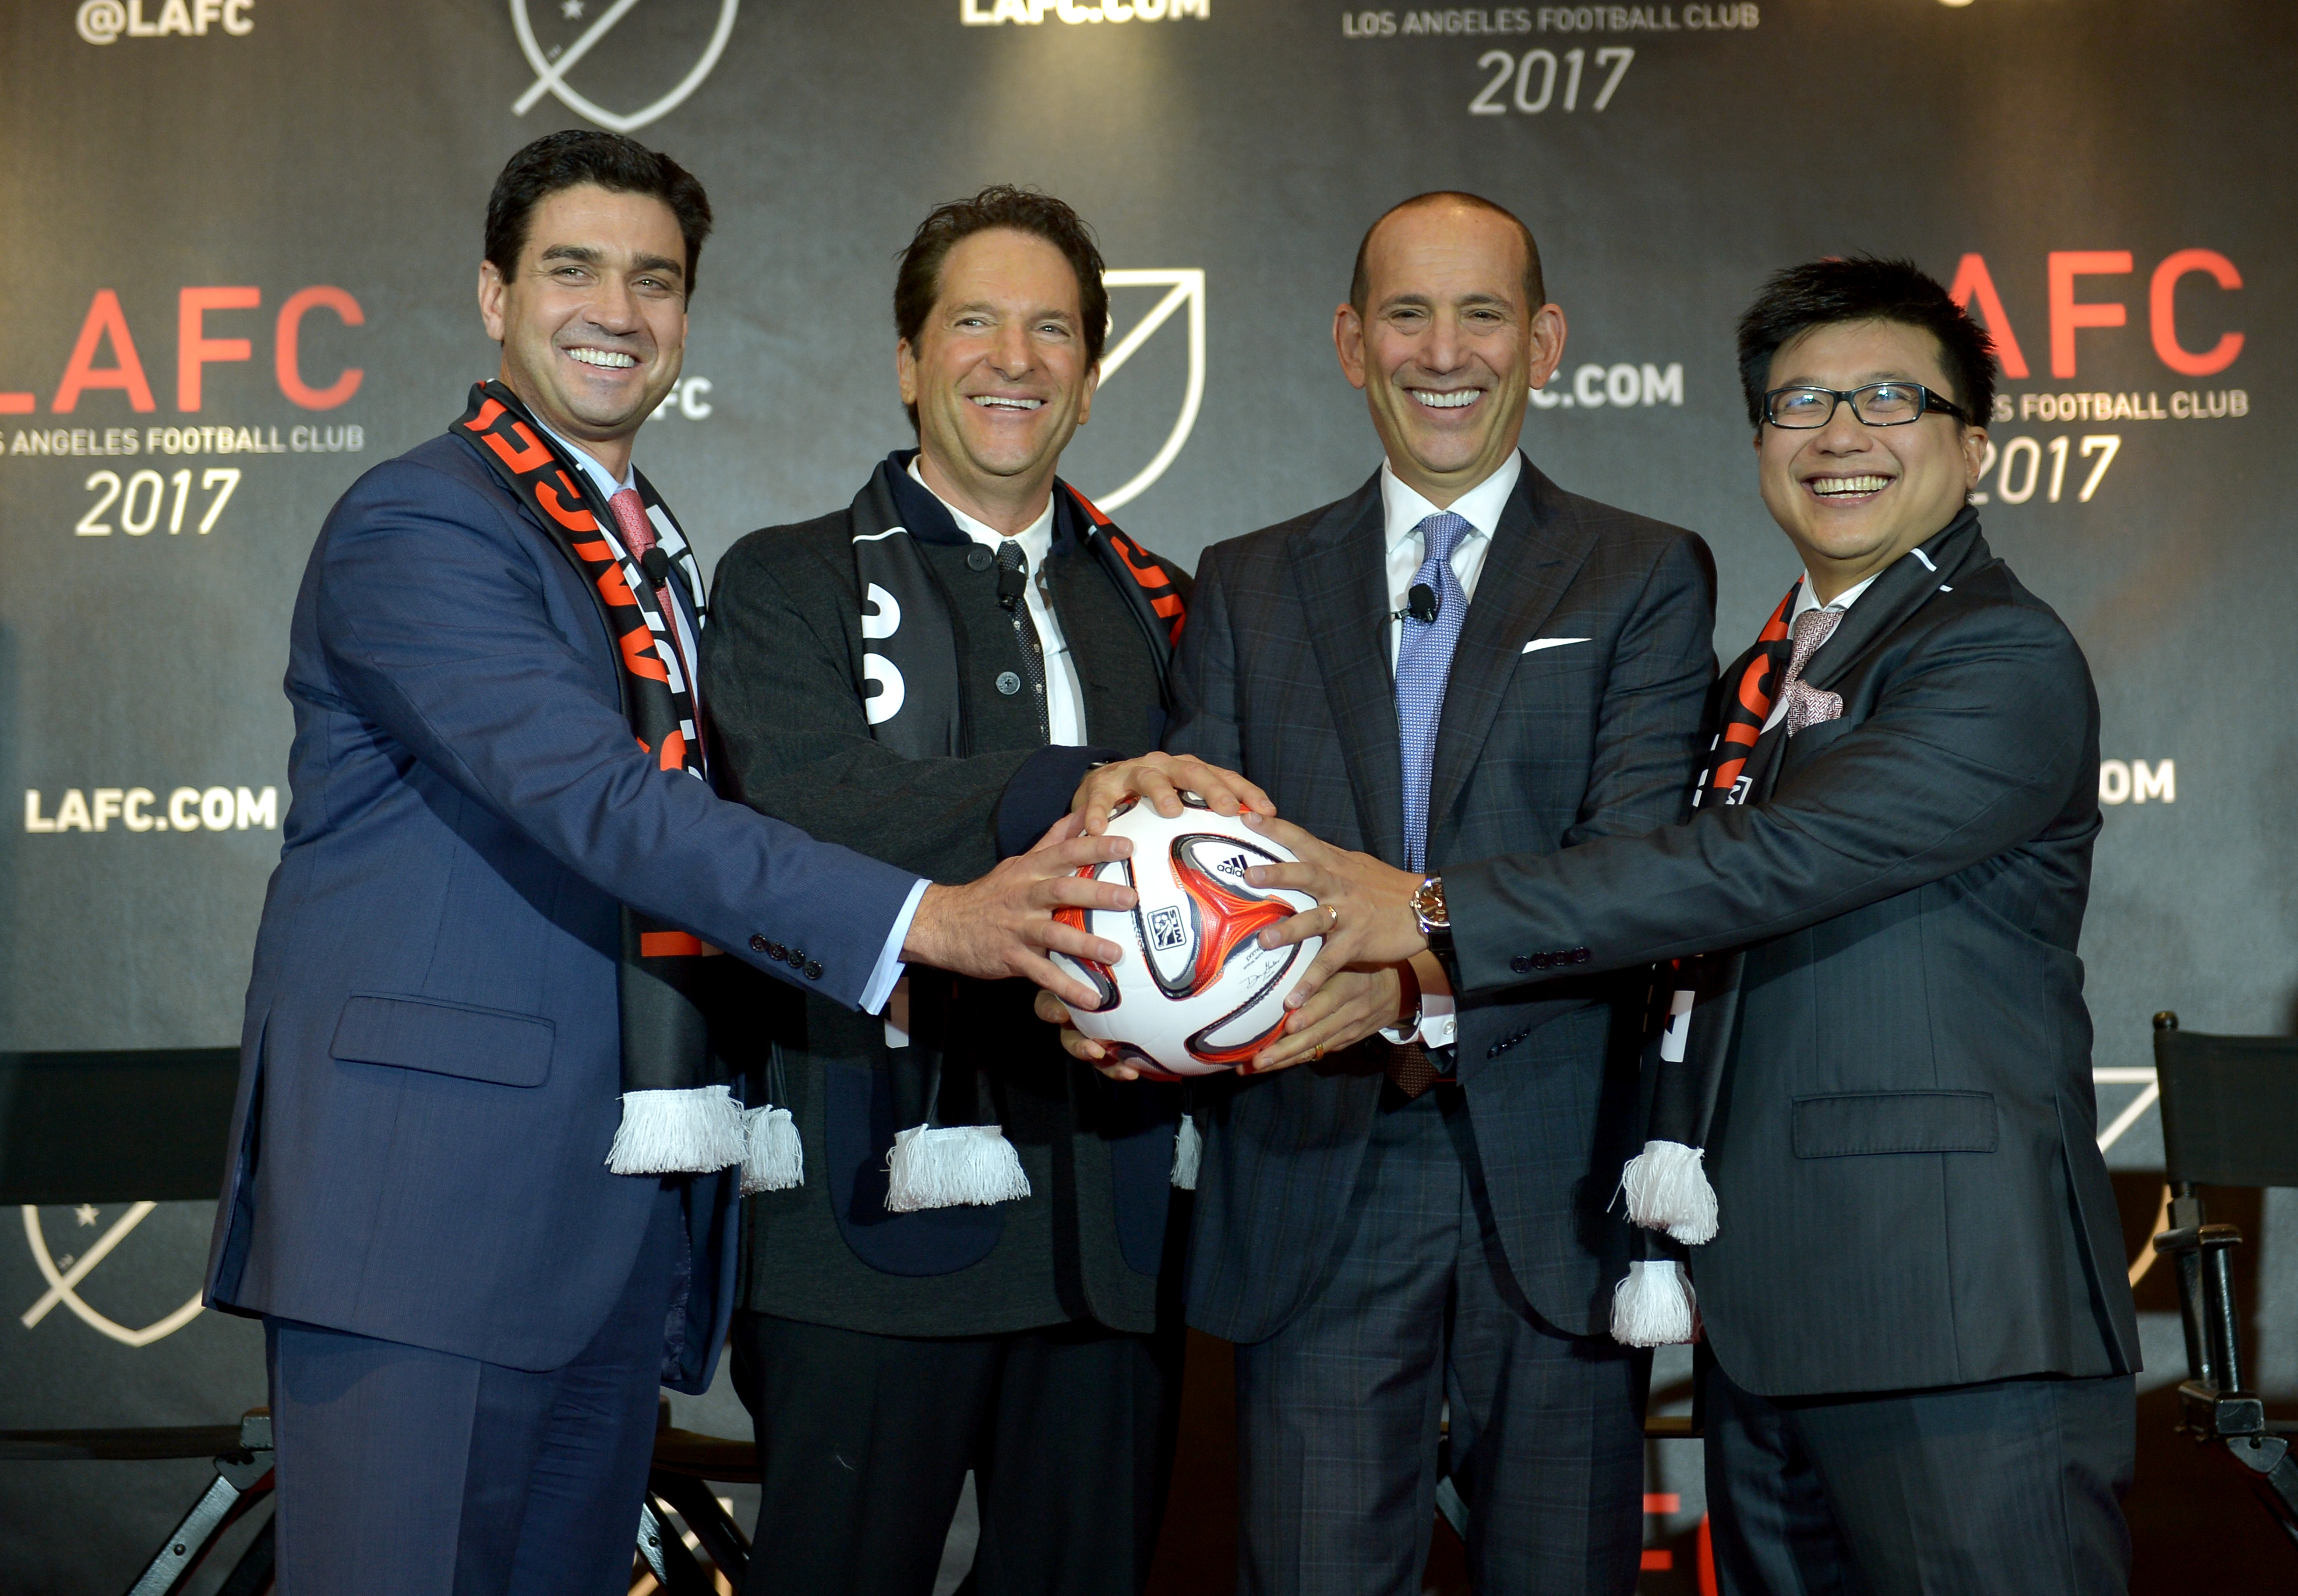 Major League Soccer Awards New Los Angeles Club, Announces Owners